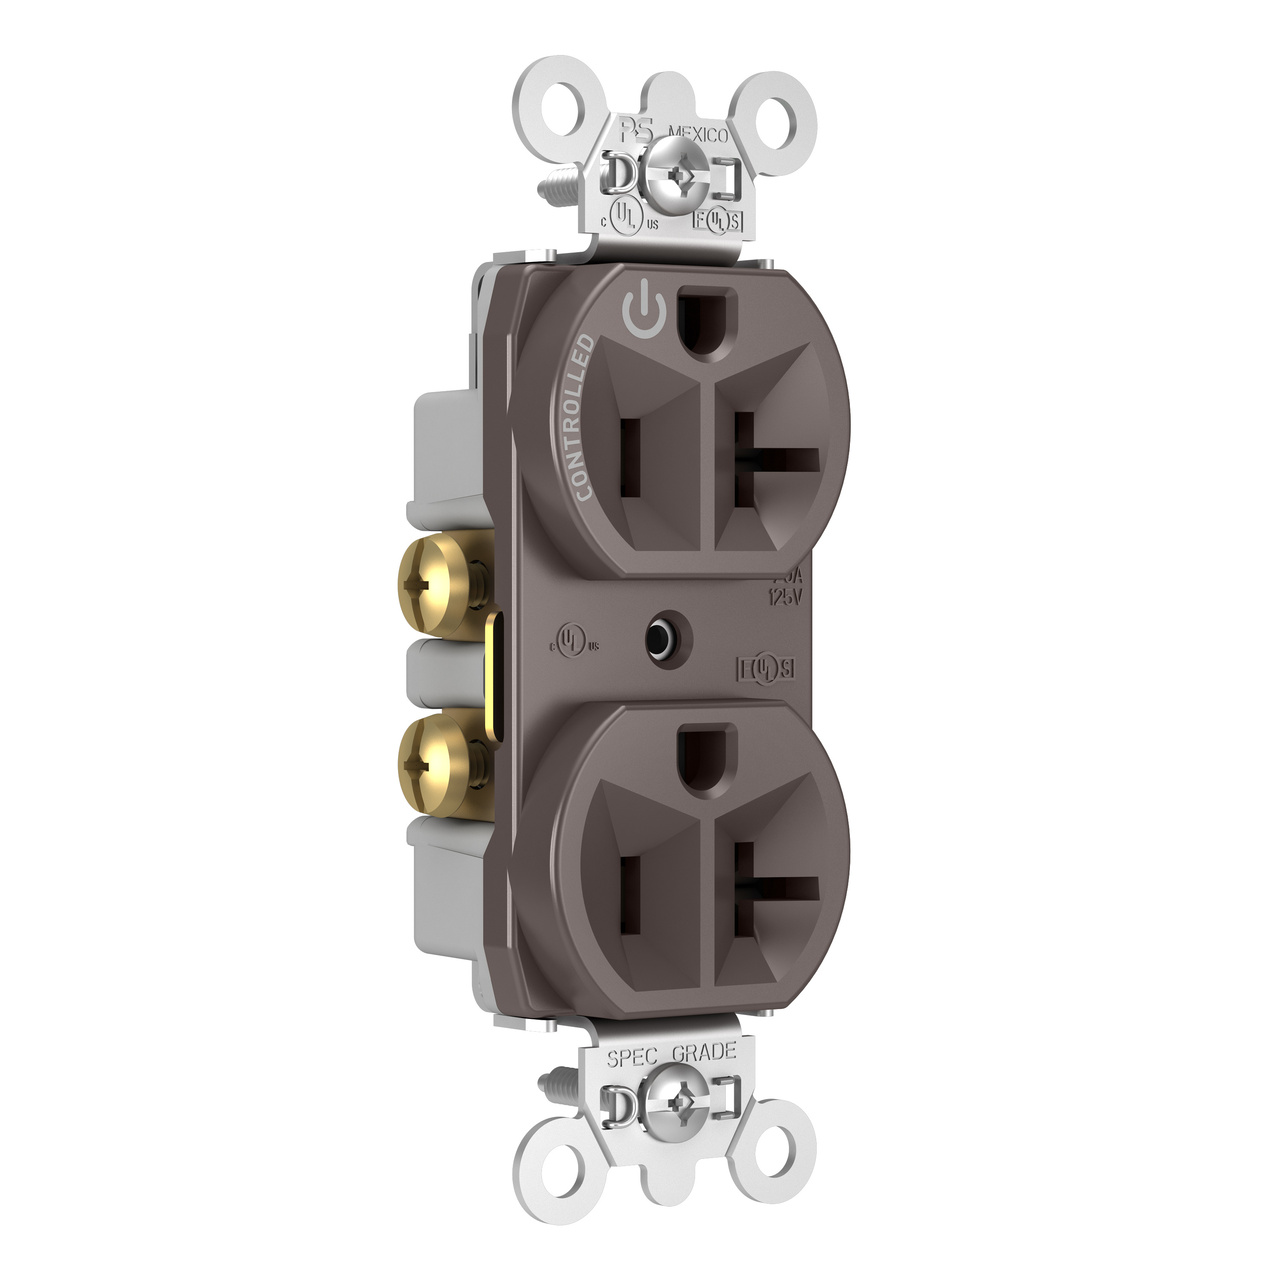 20A, 125V Half-Controlled Plug Load Controllable Receptacle, Brown